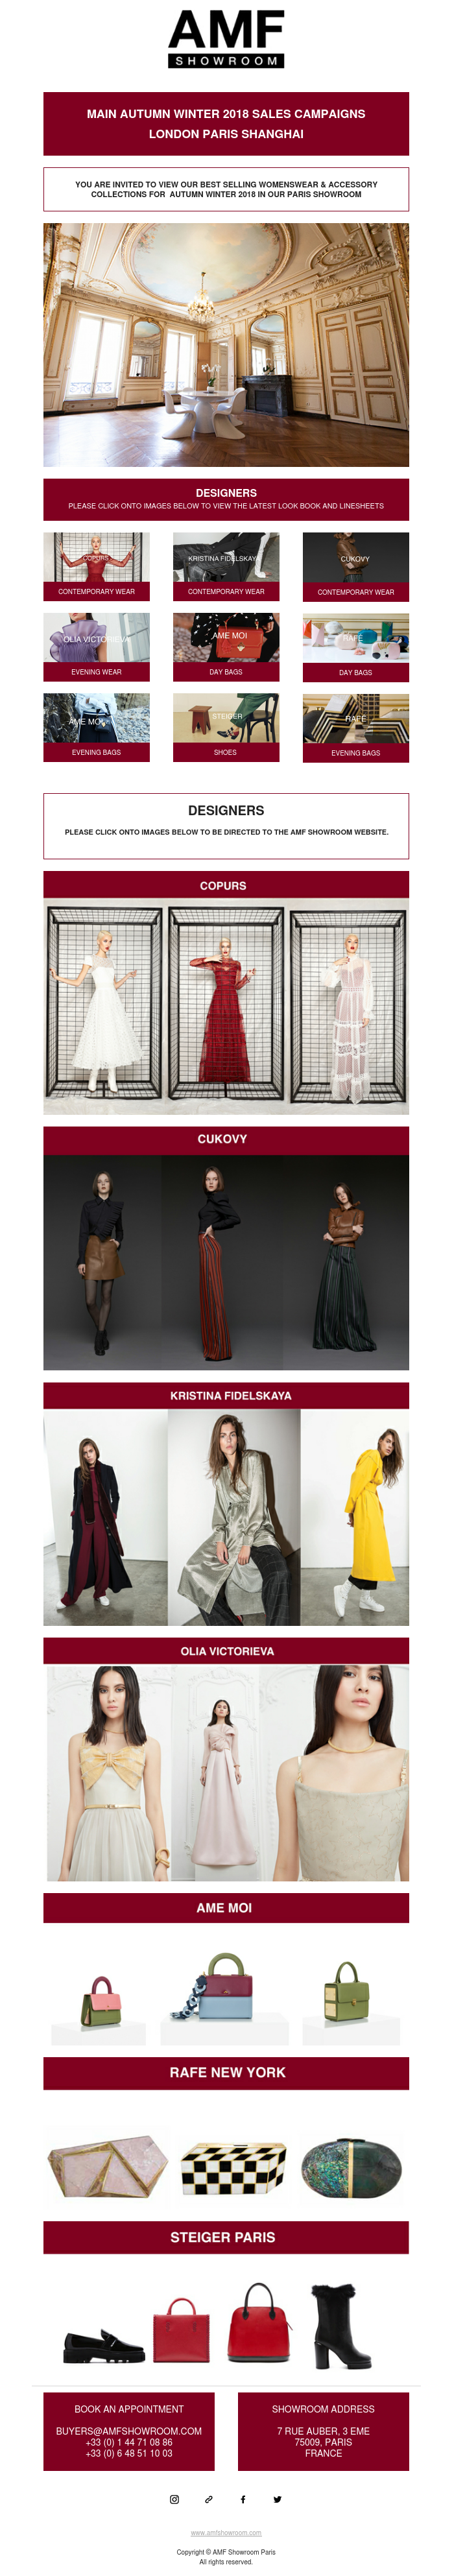 AMF-SHOWROOM-MAIN-AW18.png